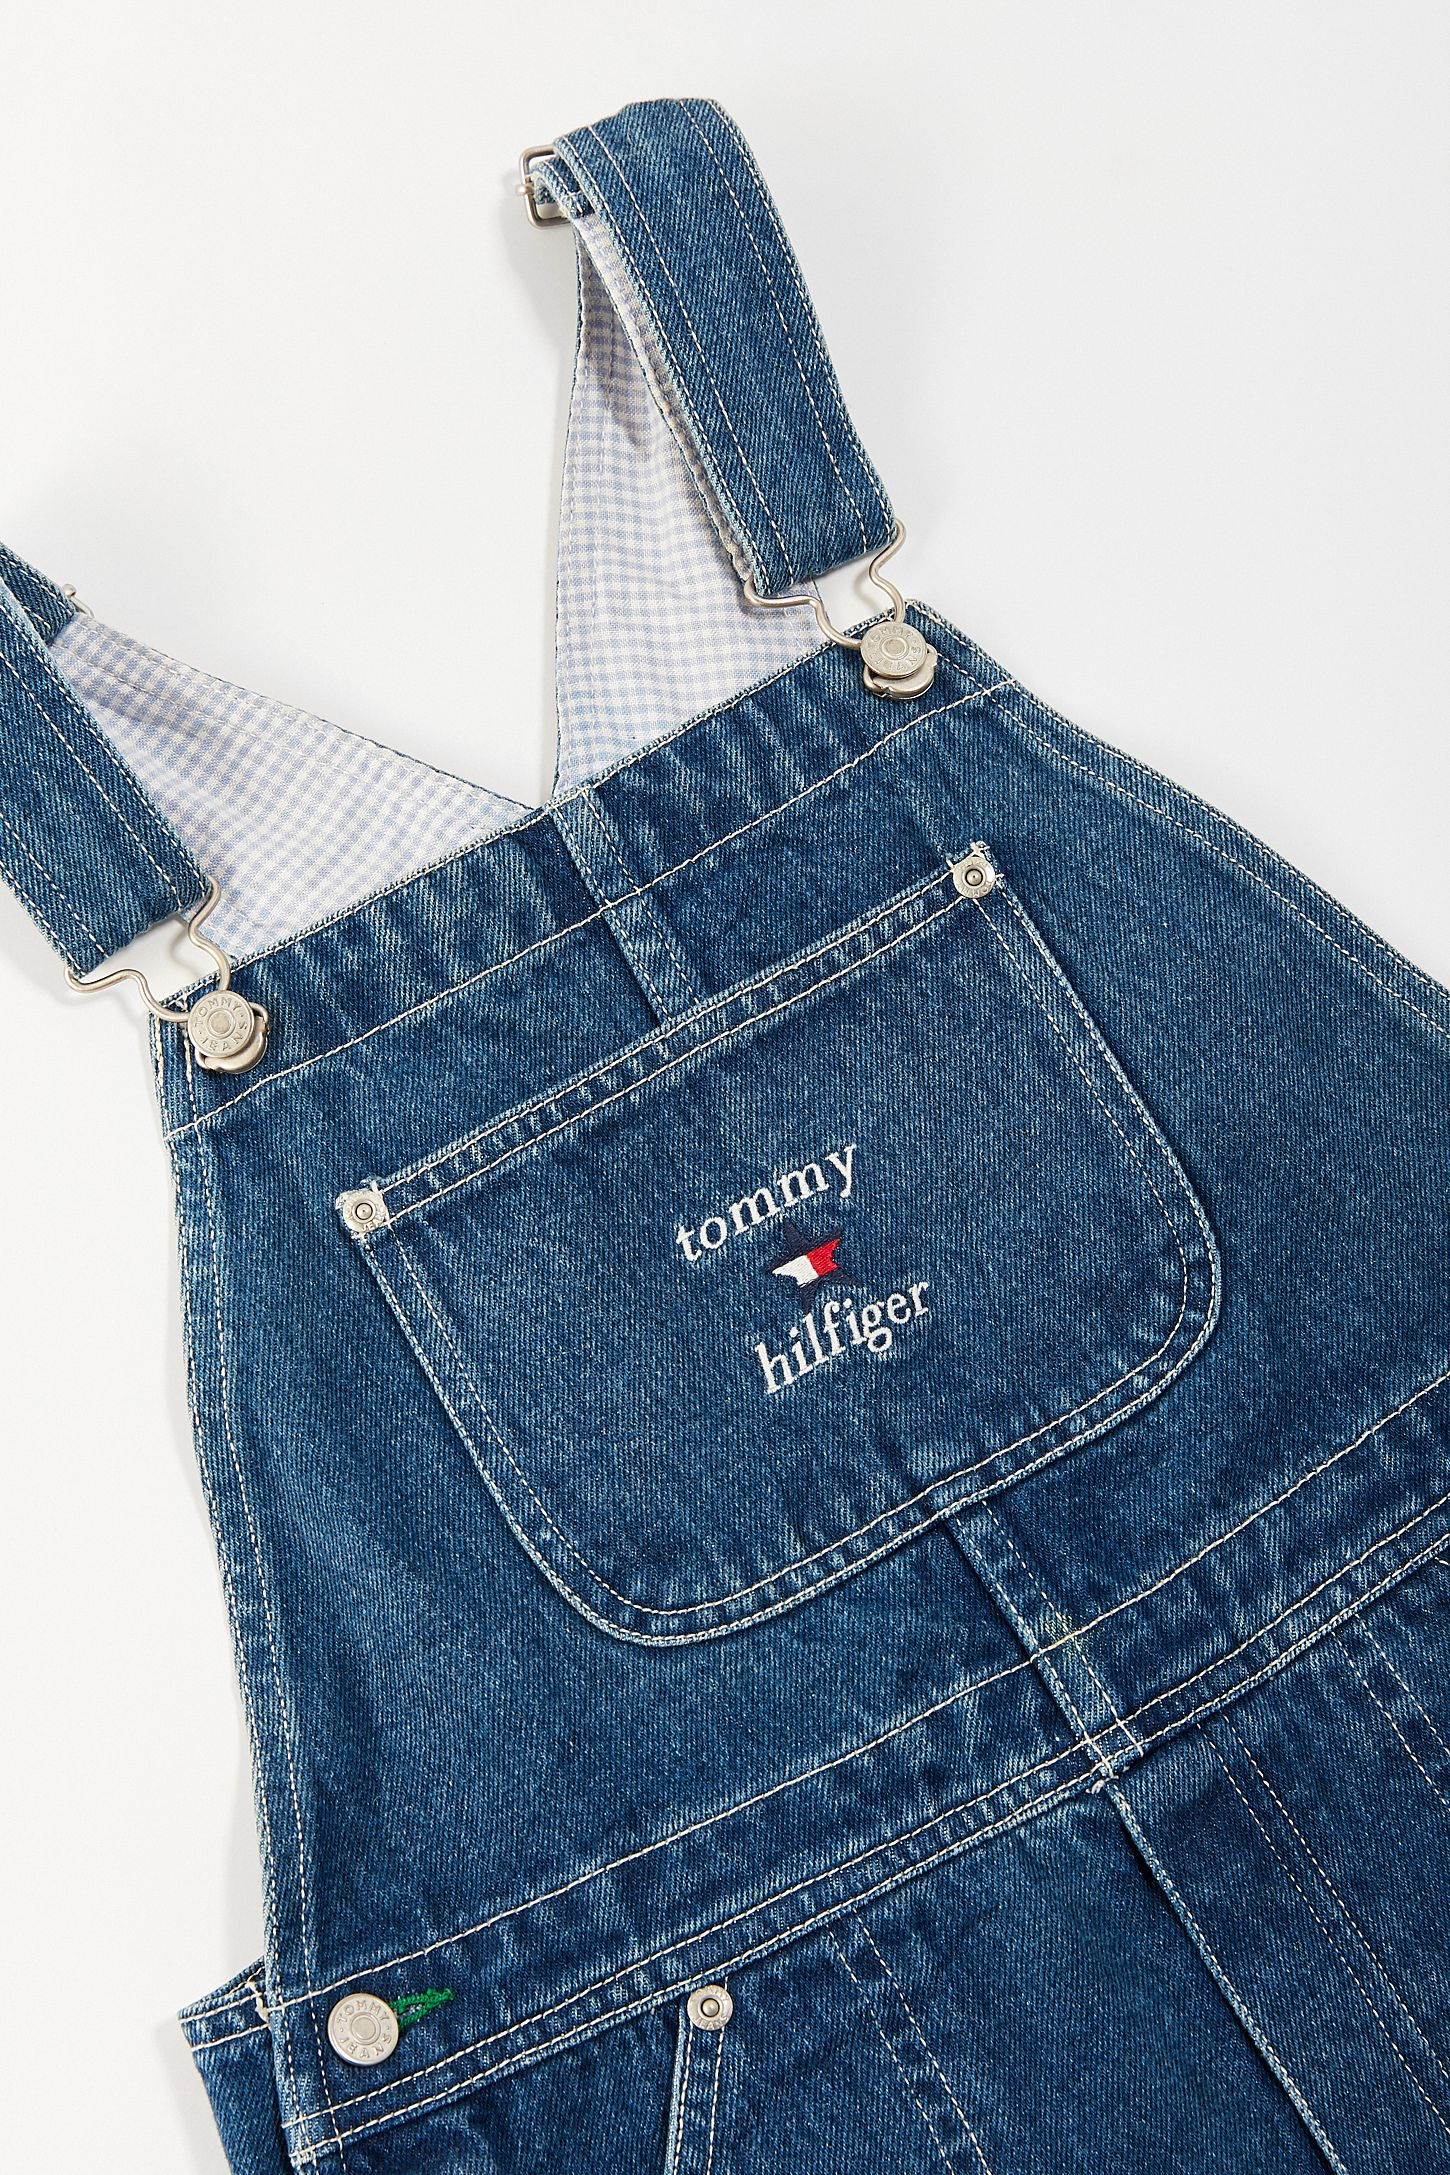 e32b3ddbf6c43 Vintage Tommy Hilfiger  90s Embroidered Denim Overall